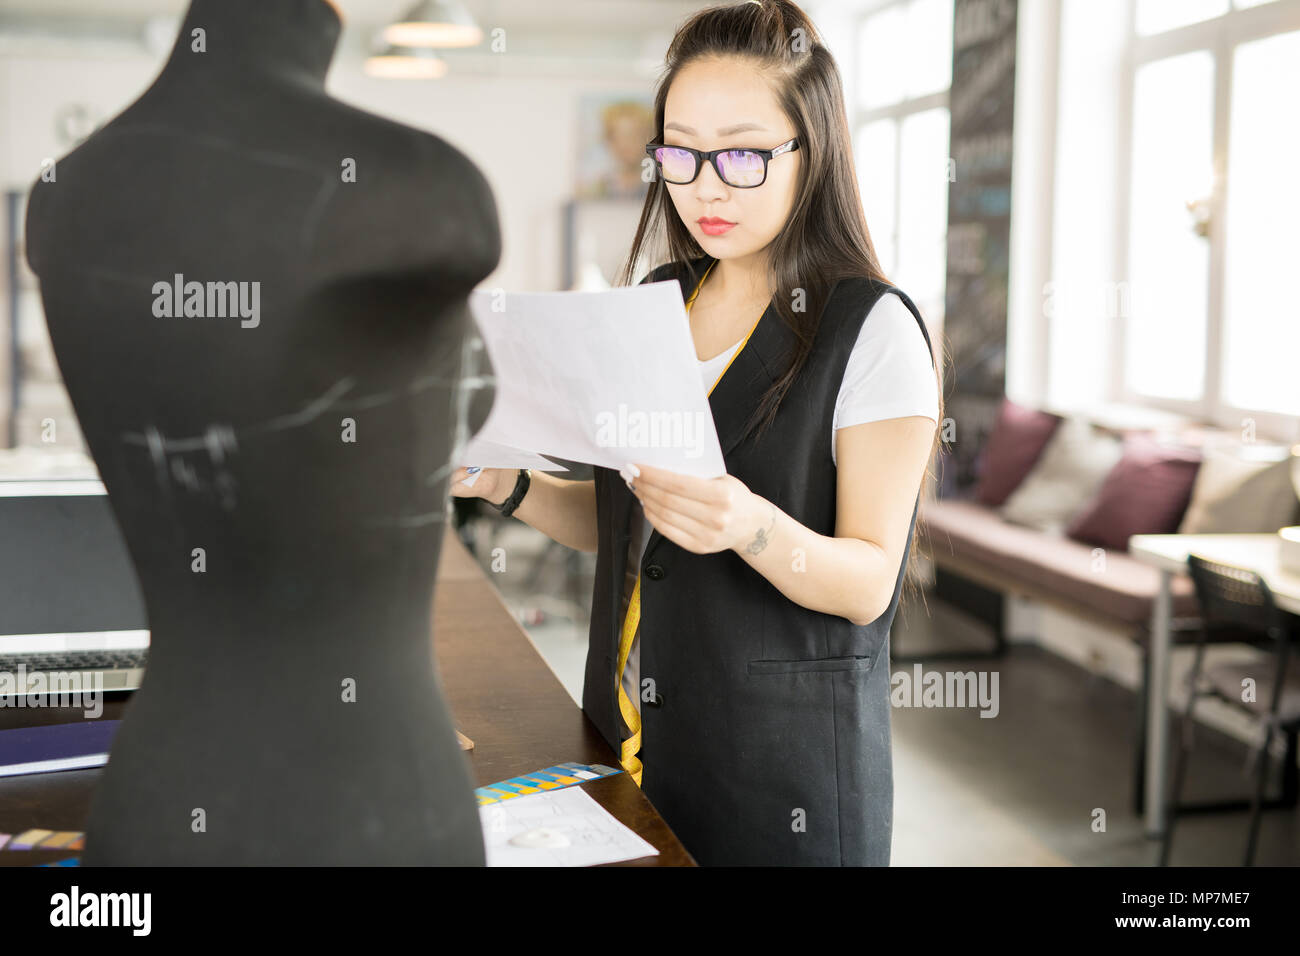 Asian Woman Working in Atelier Workshop - Stock Image